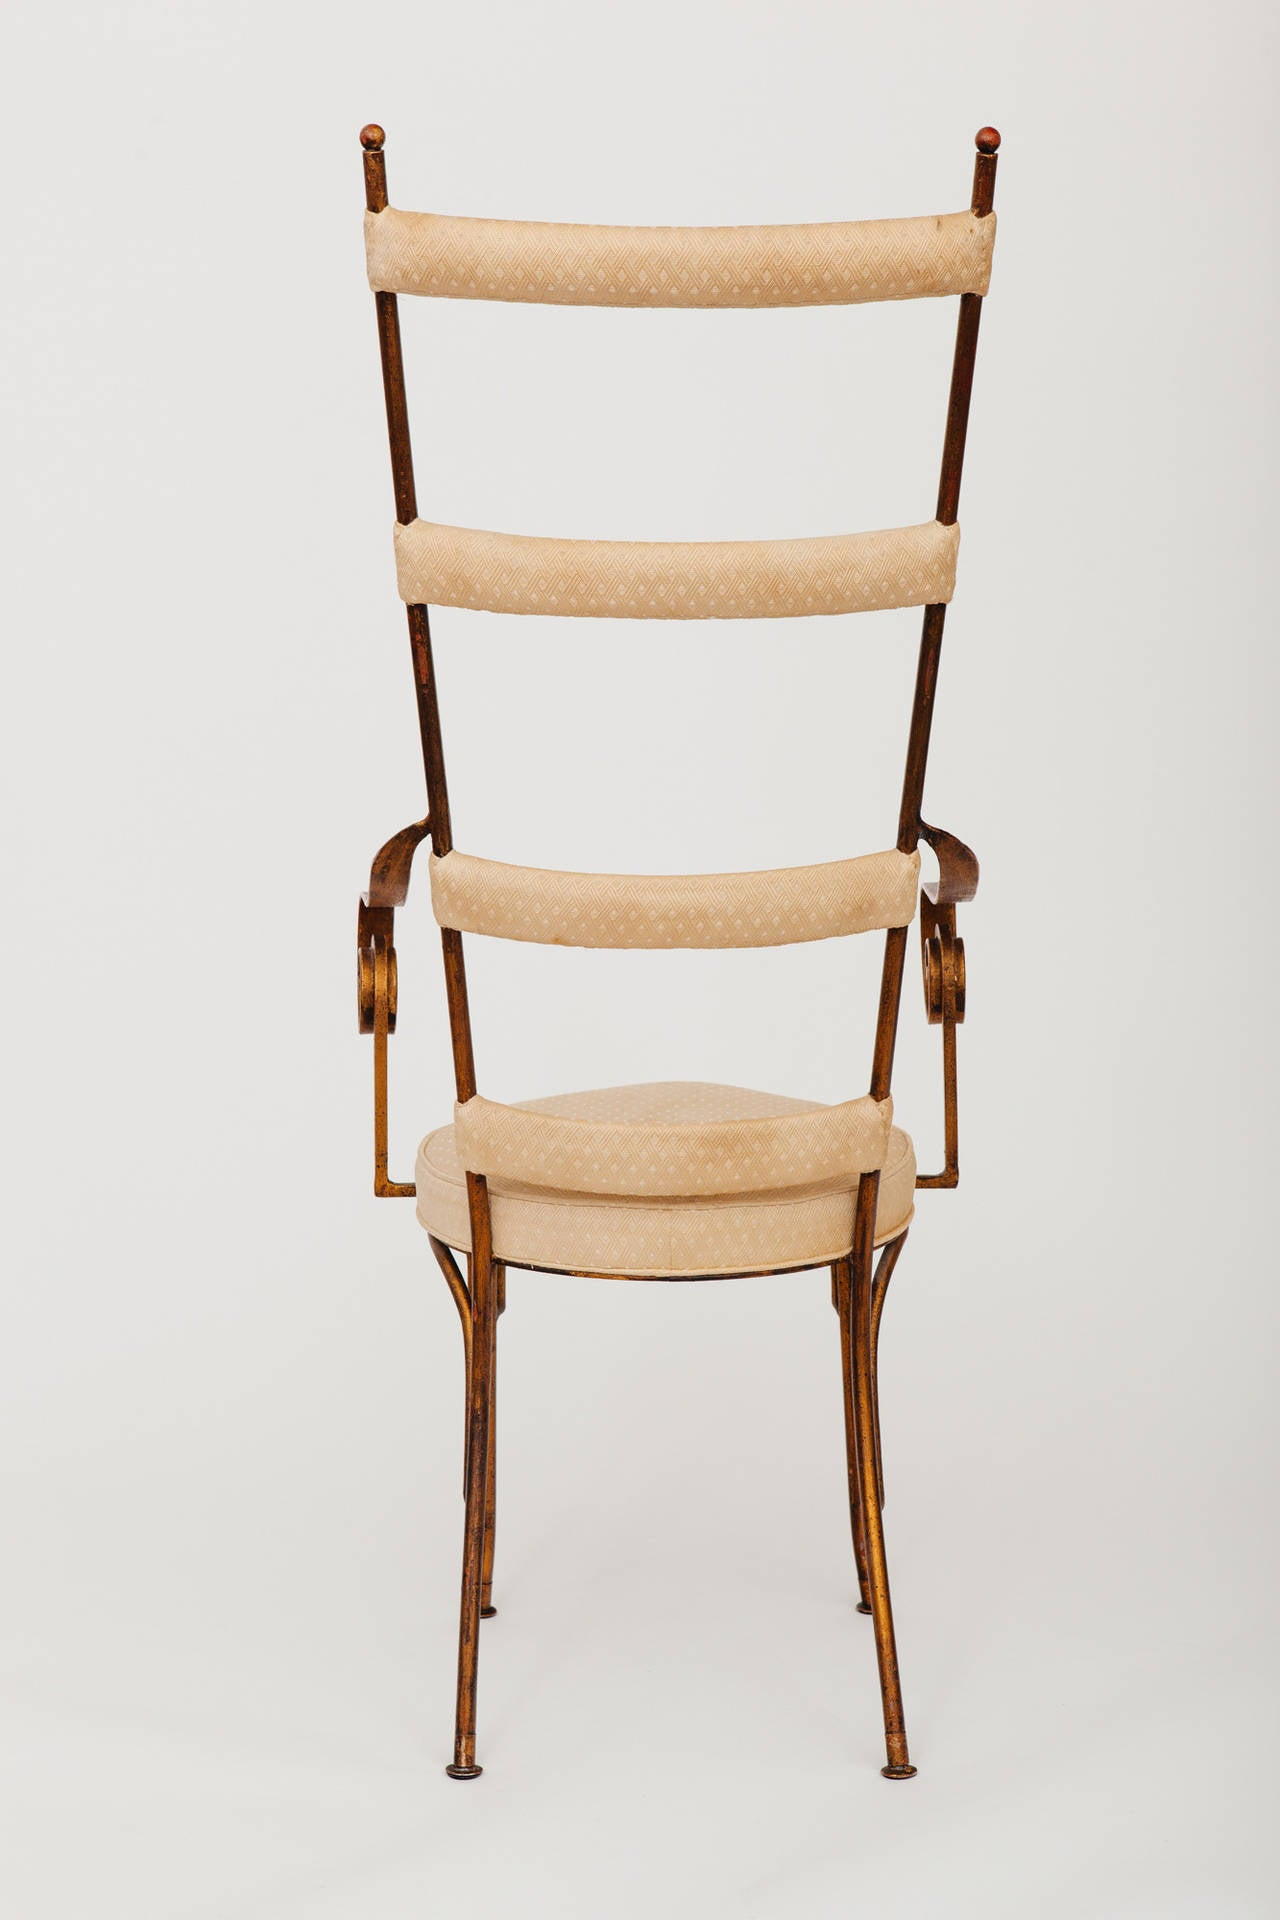 Italian Gilt Metal Ladder Back Chair, circa 1950s 6